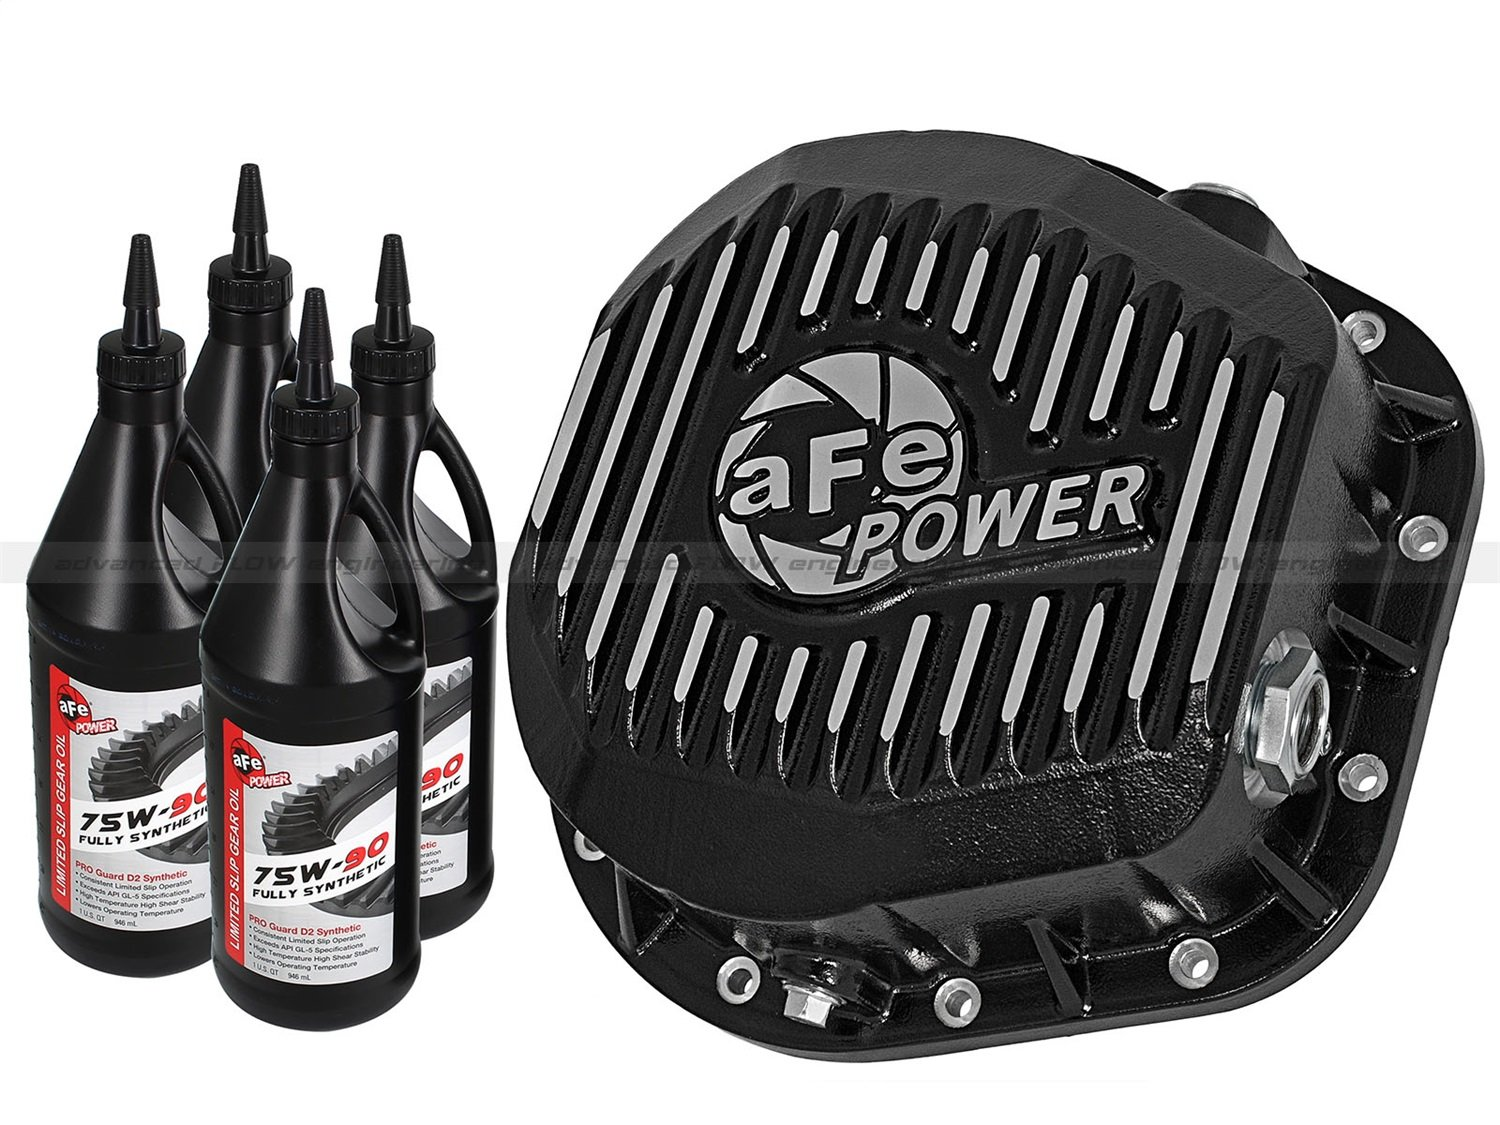 aFe Power 46-70022-WL Pro Series Machined Rear Differential Cover with Gear Oil by aFe Power (Image #8)